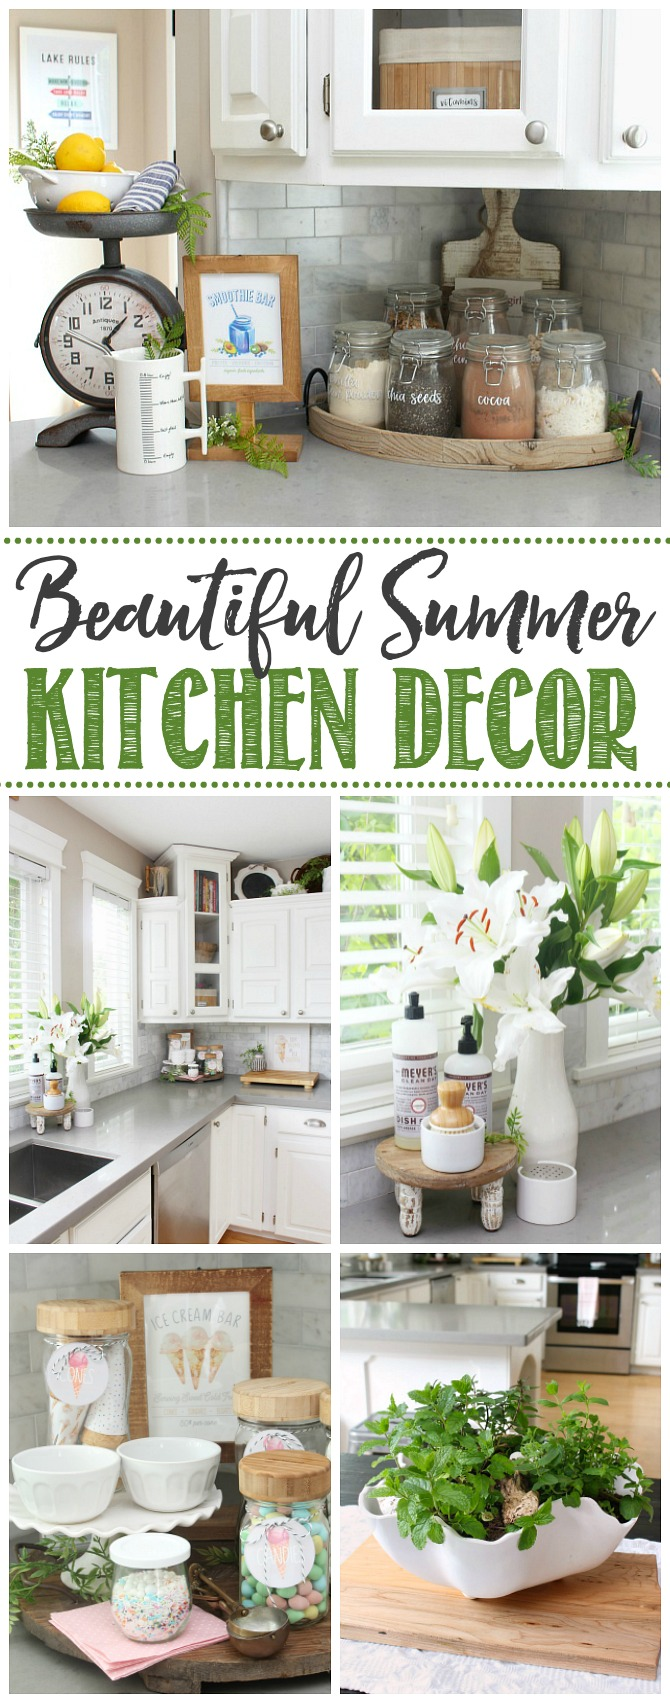 Collage of beautiful summer ktichen ideas in a white farmhouse style kitchen.